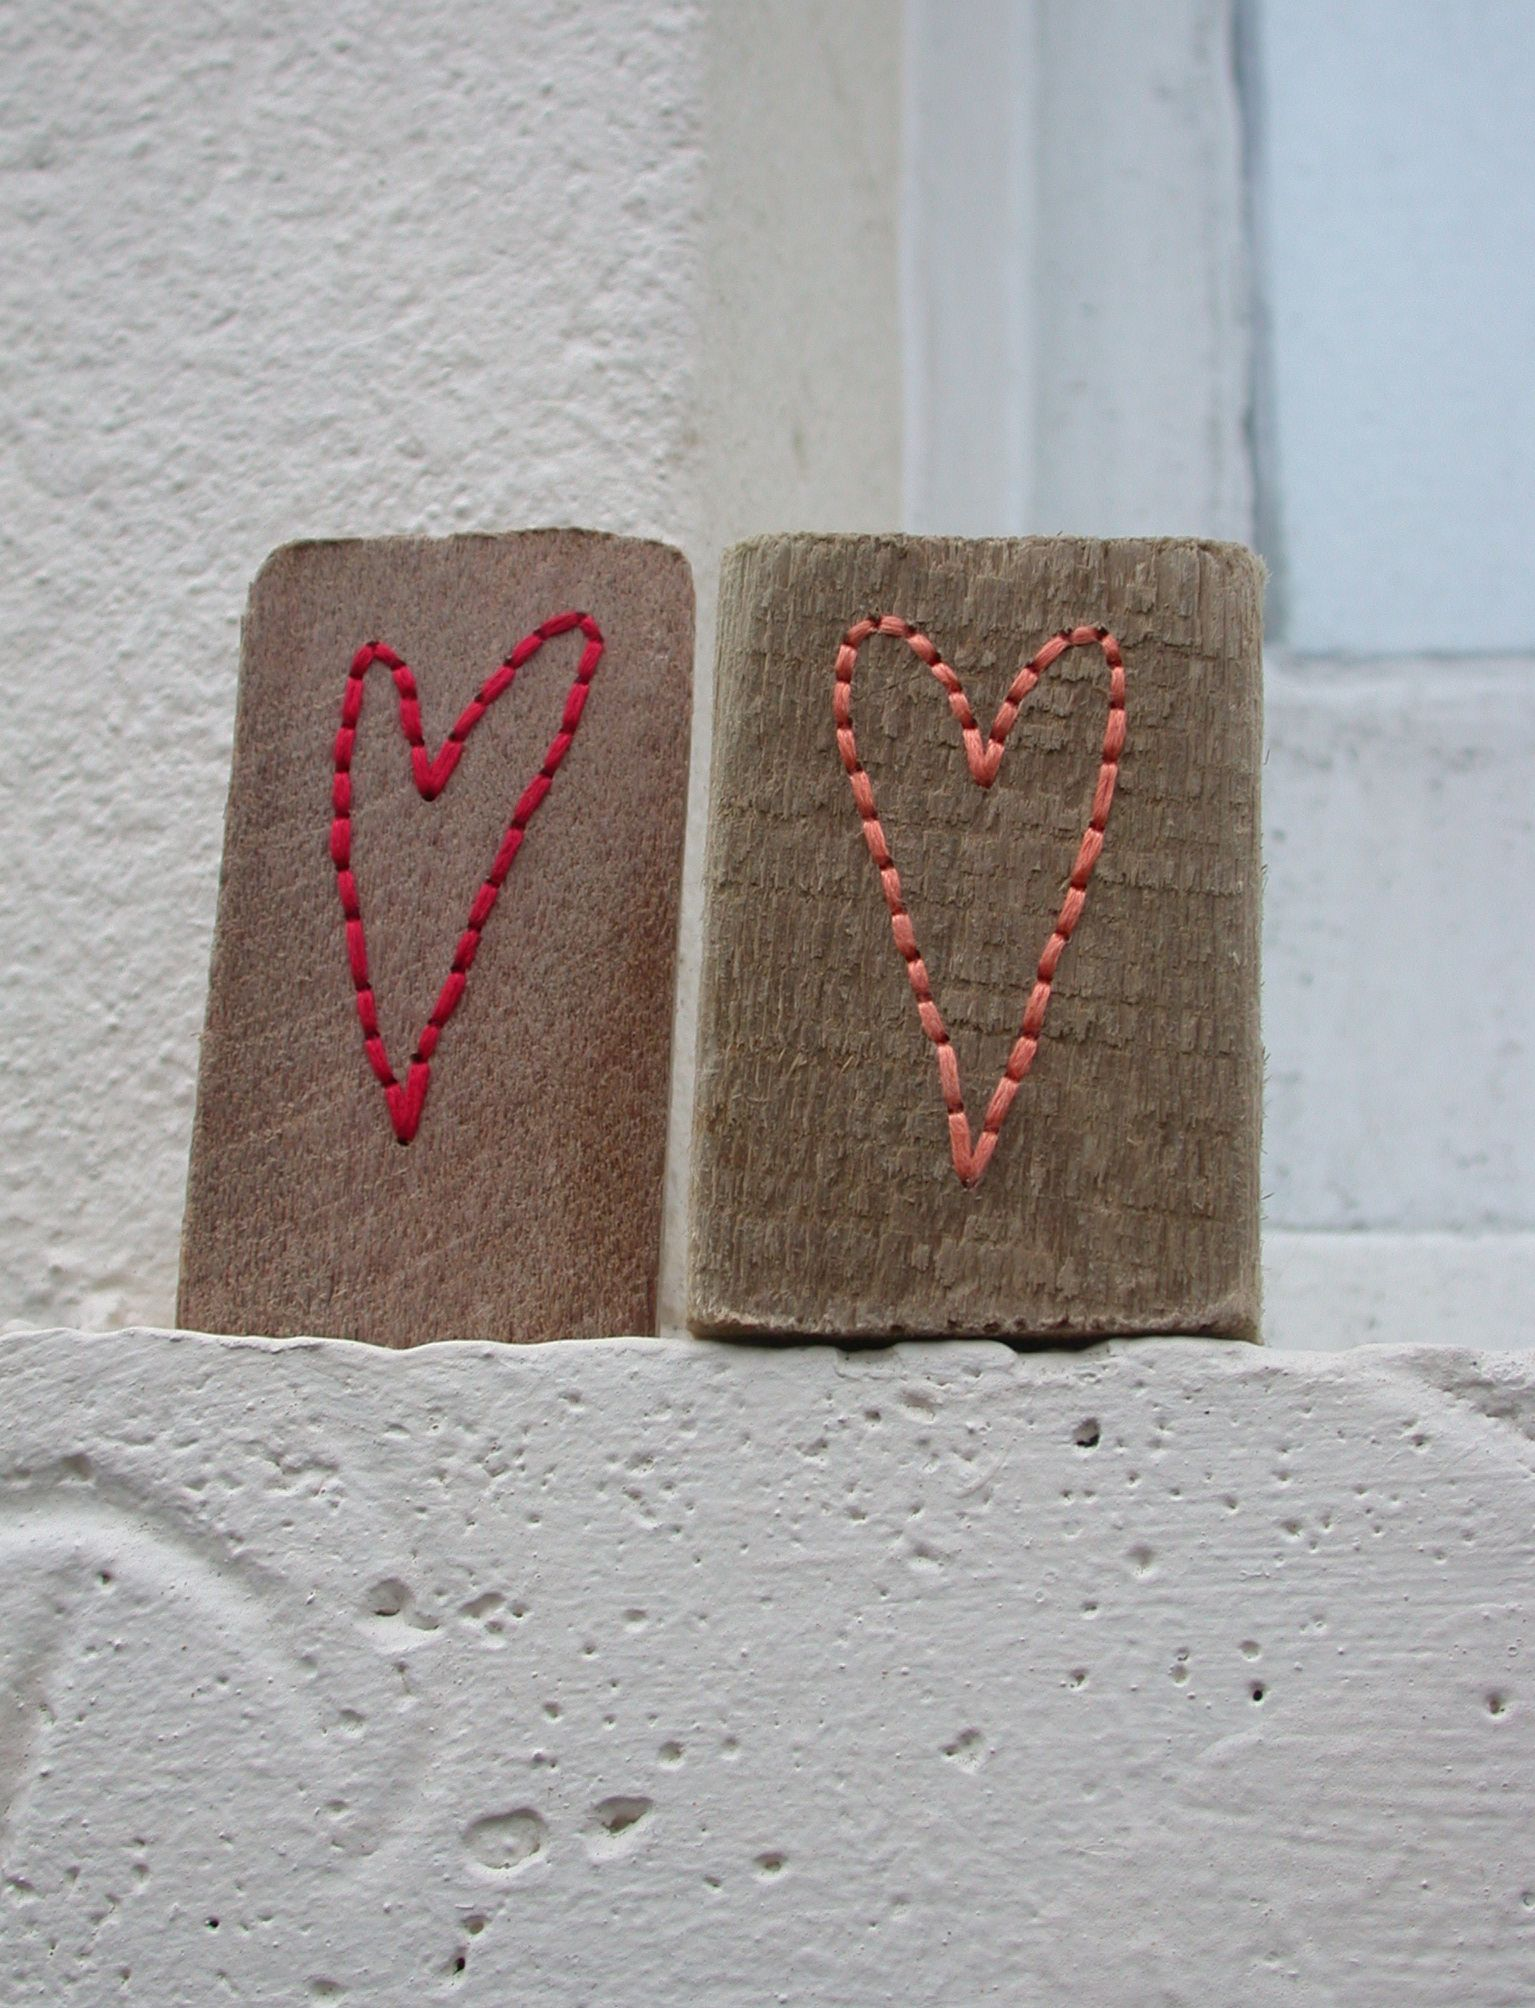 Driftwood Hearts Duo Red And Coral Brighton Driftwood And Anchor Embroidery Thread Www Ellarobinson Com Anchor Embroidery Crafts Embroidery Thread